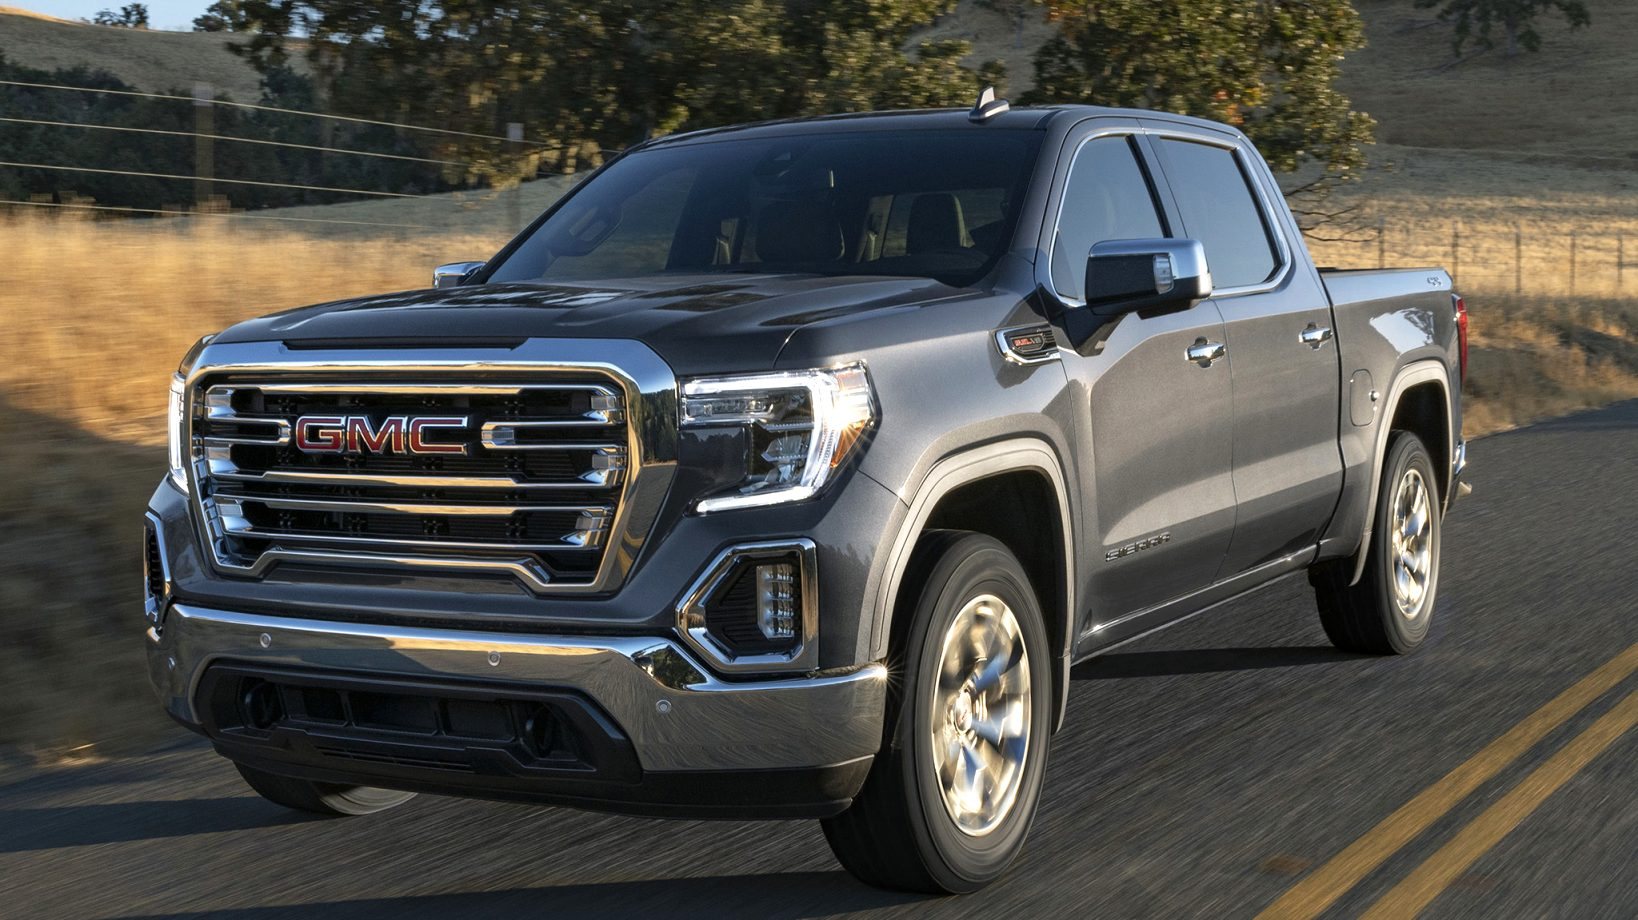 2021 GMC truck New Review